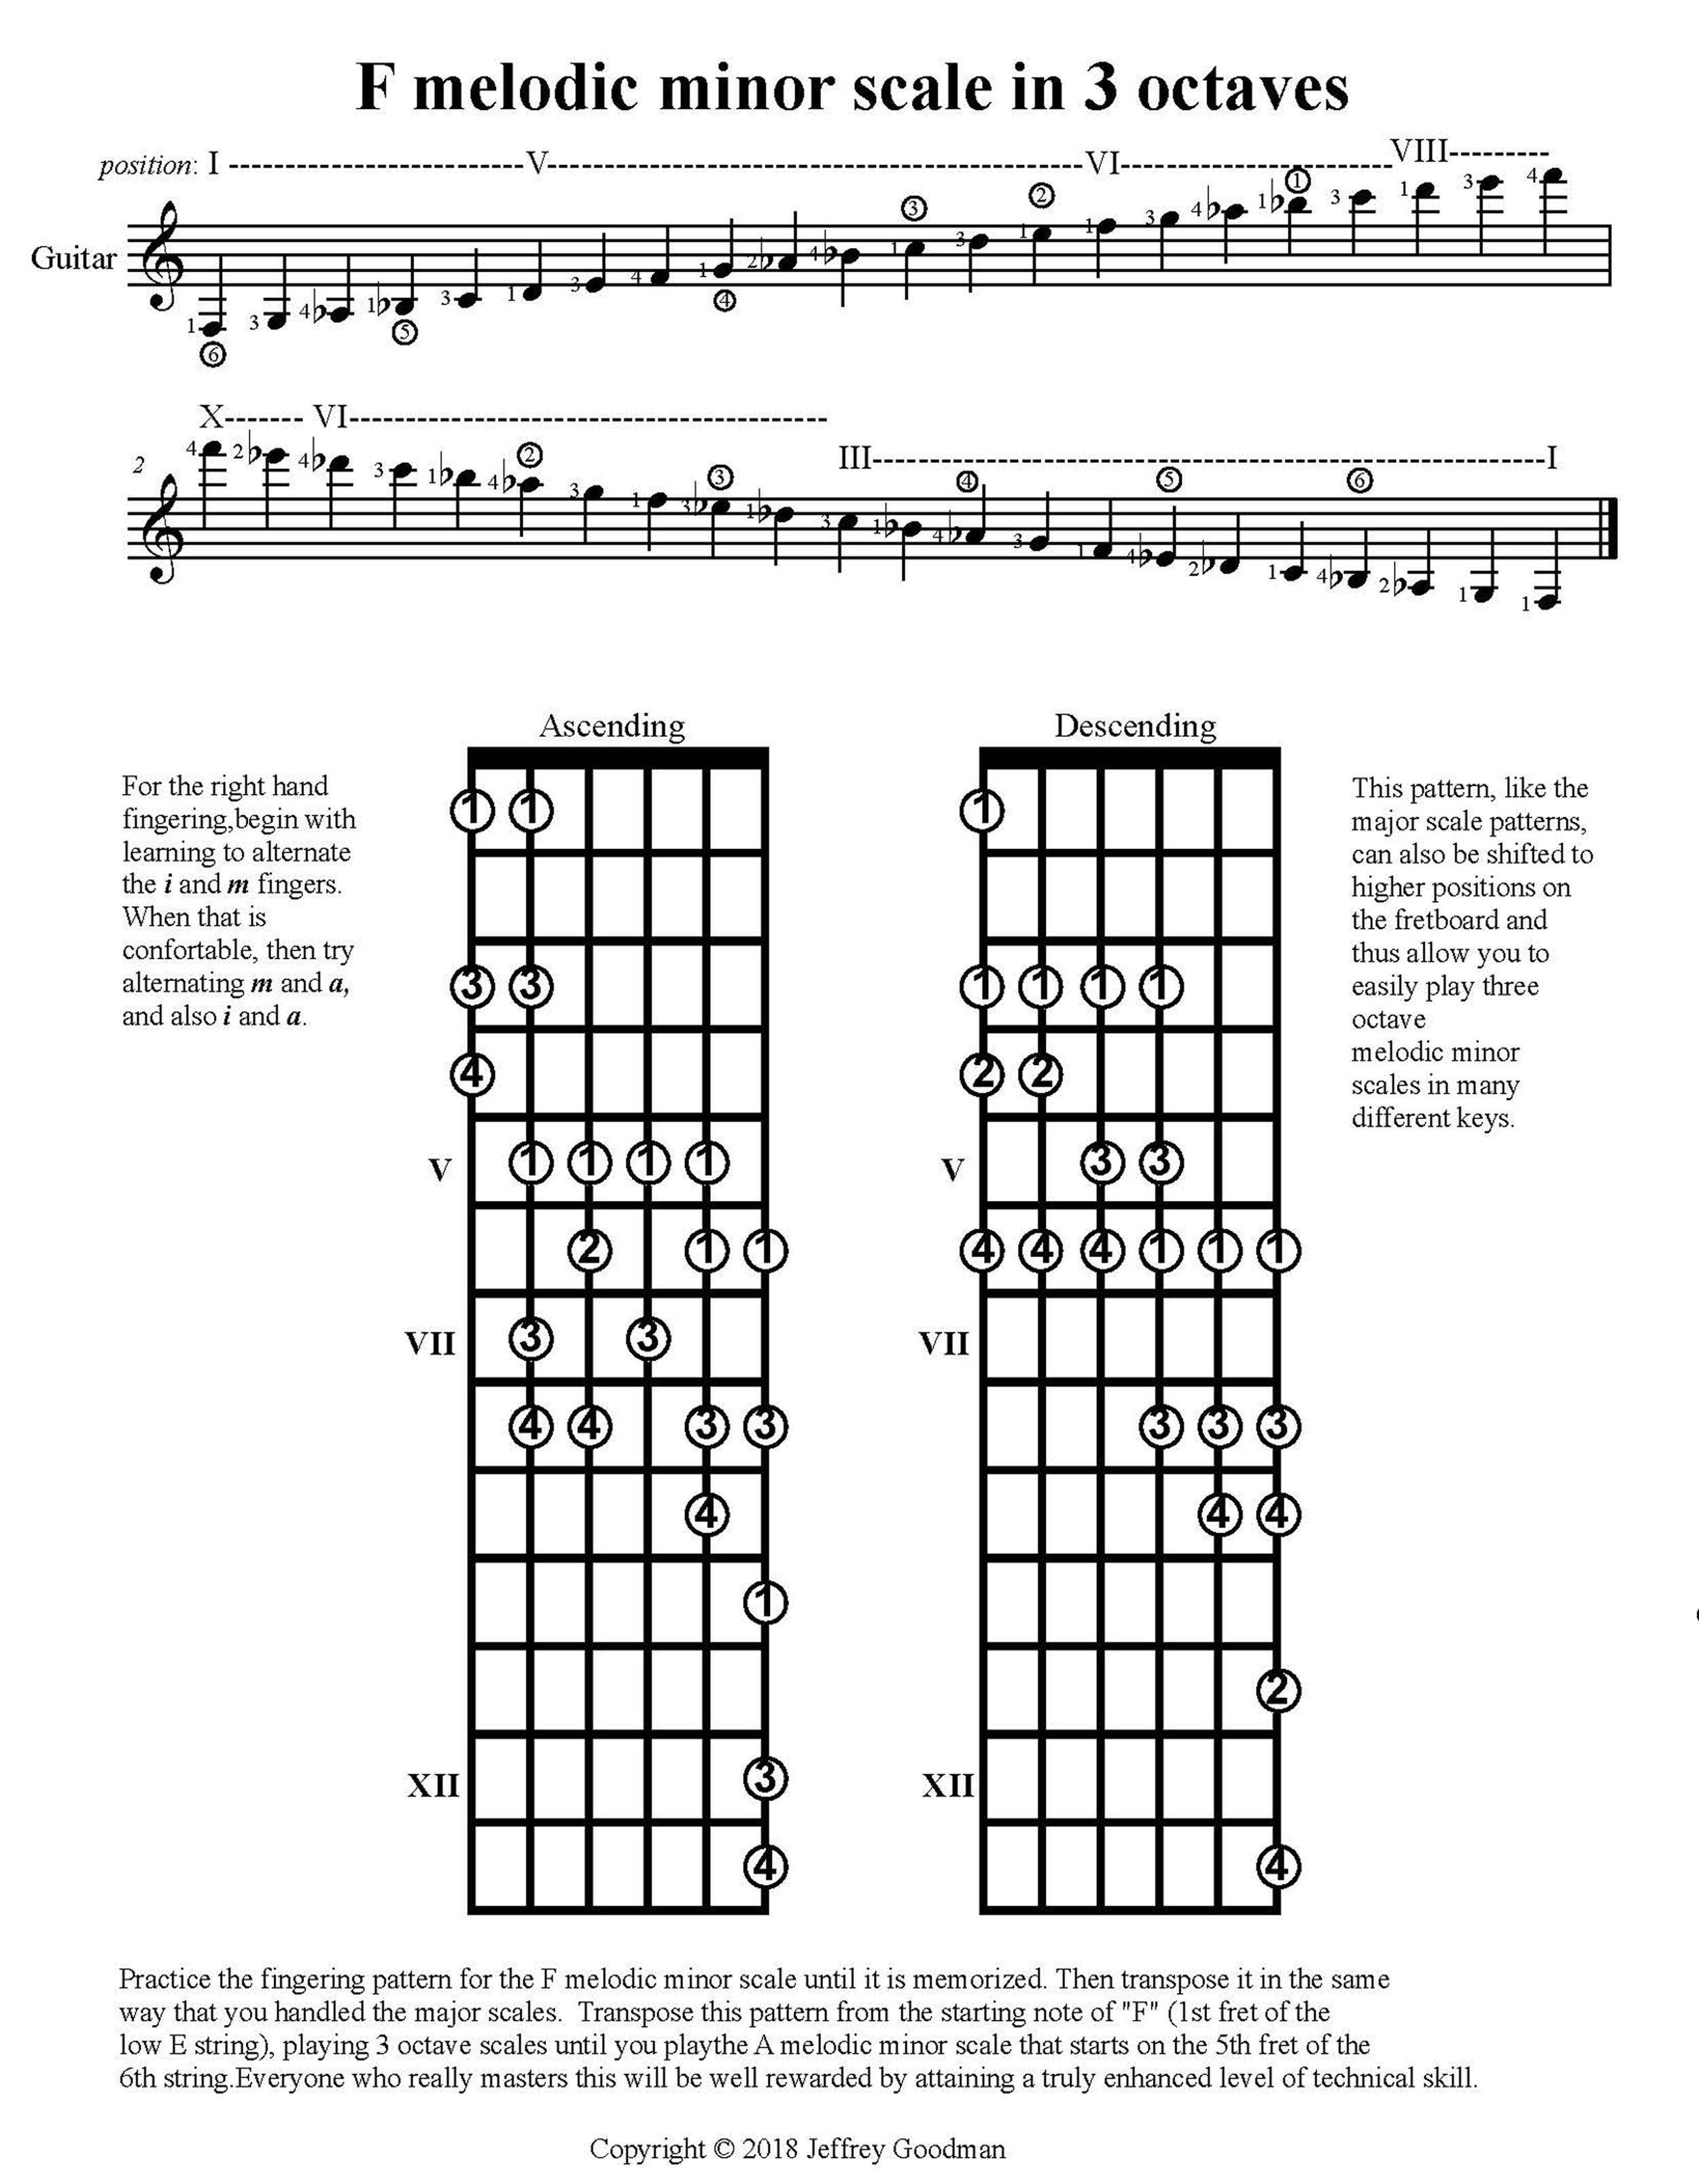 F minor scale in 3 octaves corrected.jpg